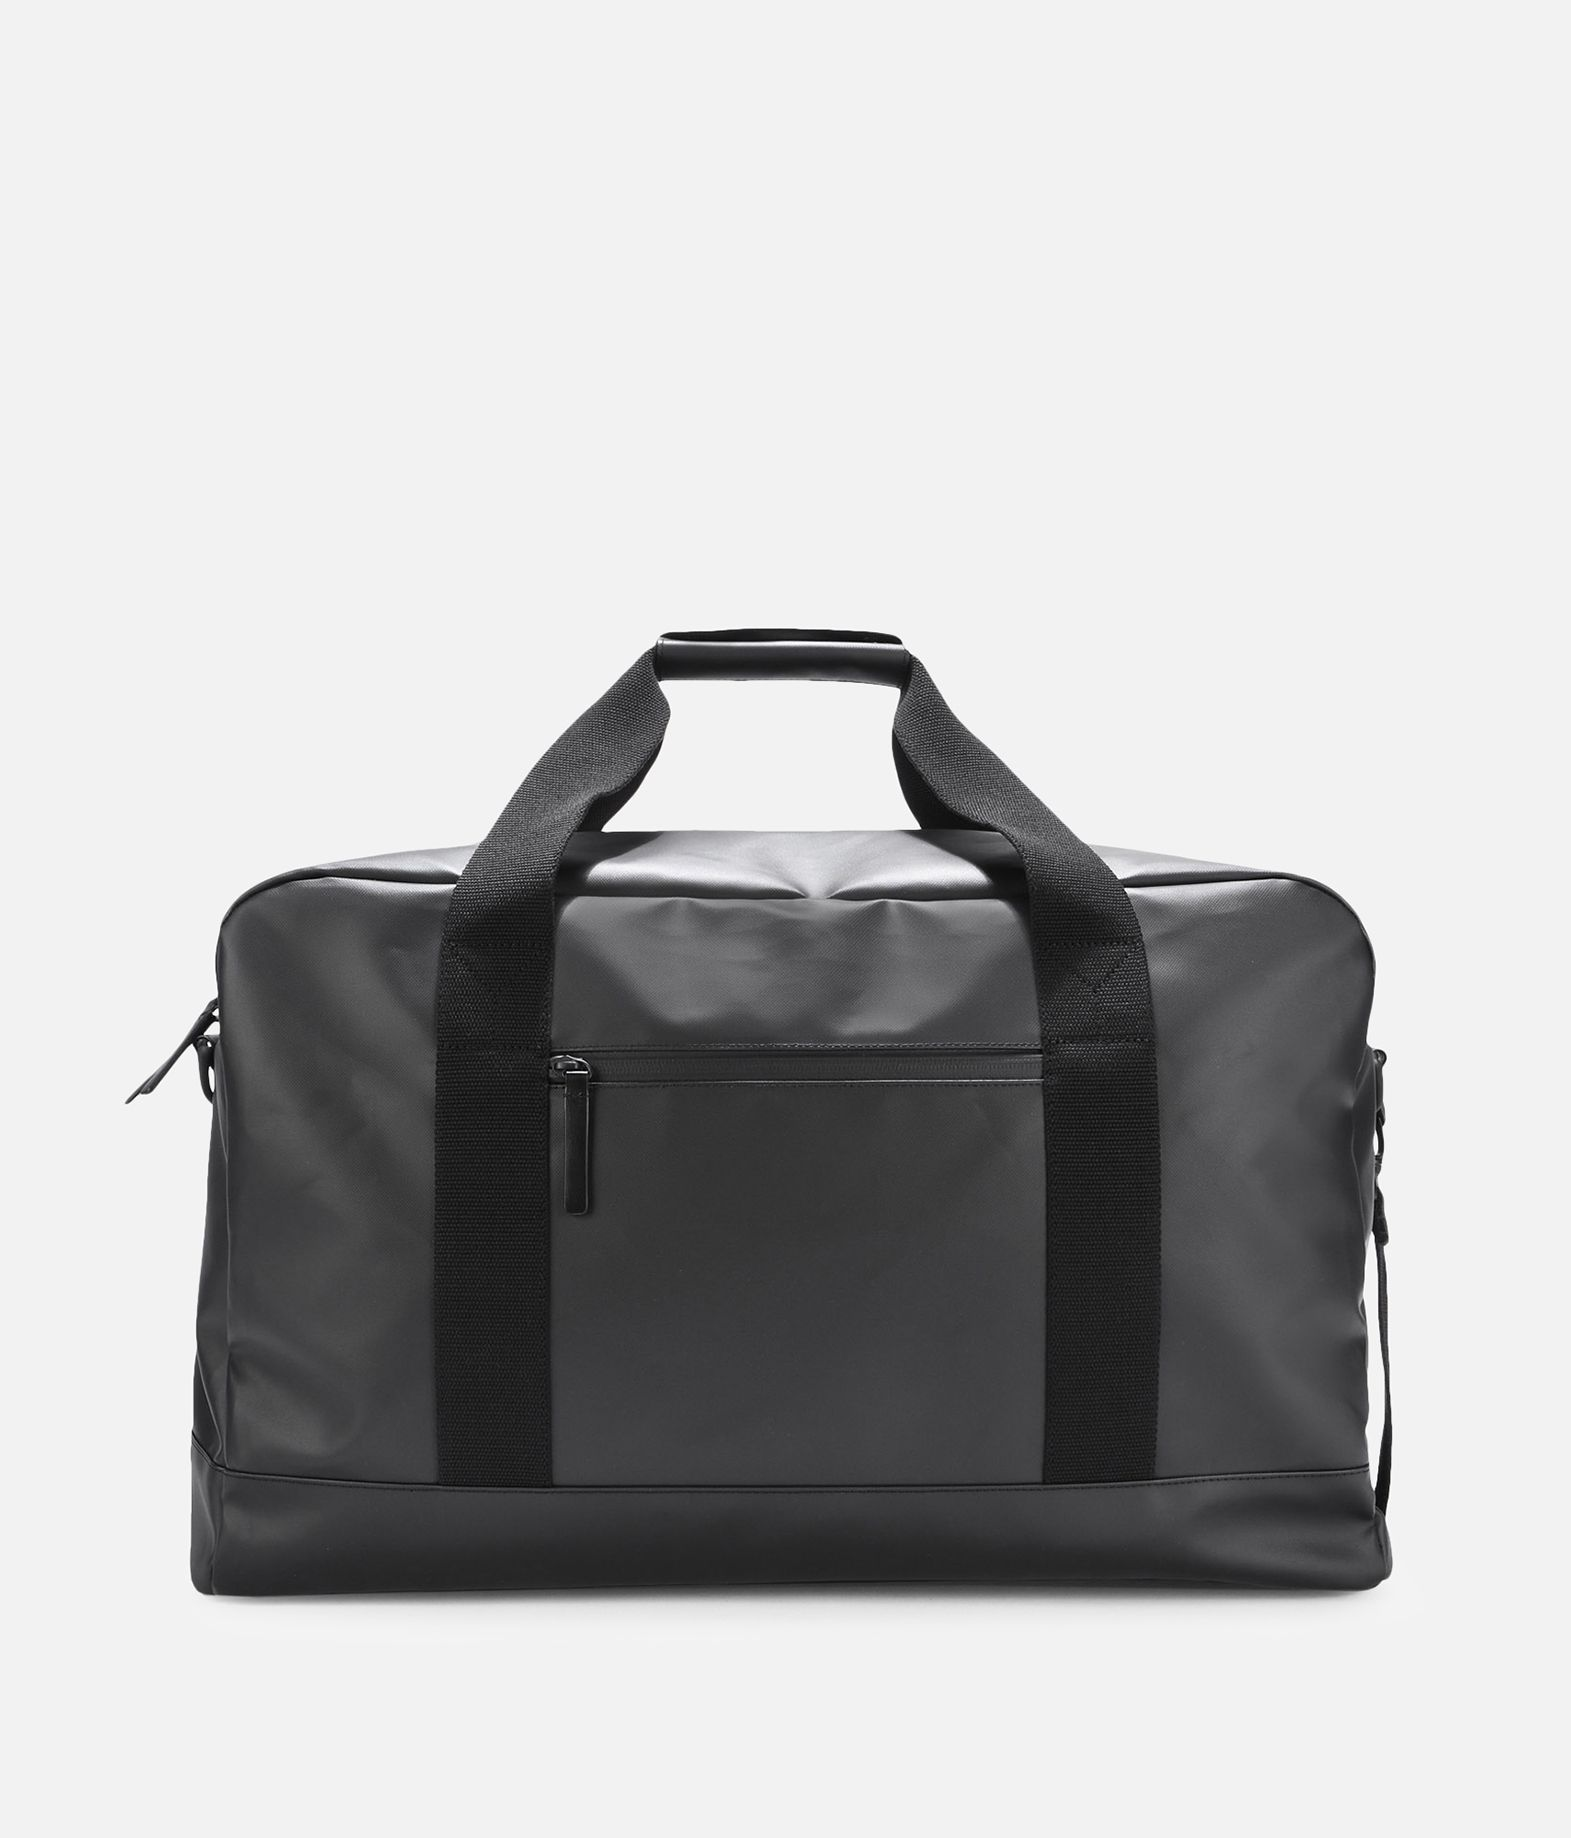 Y-3 Y-3 Weekender Bag Travel bags E d